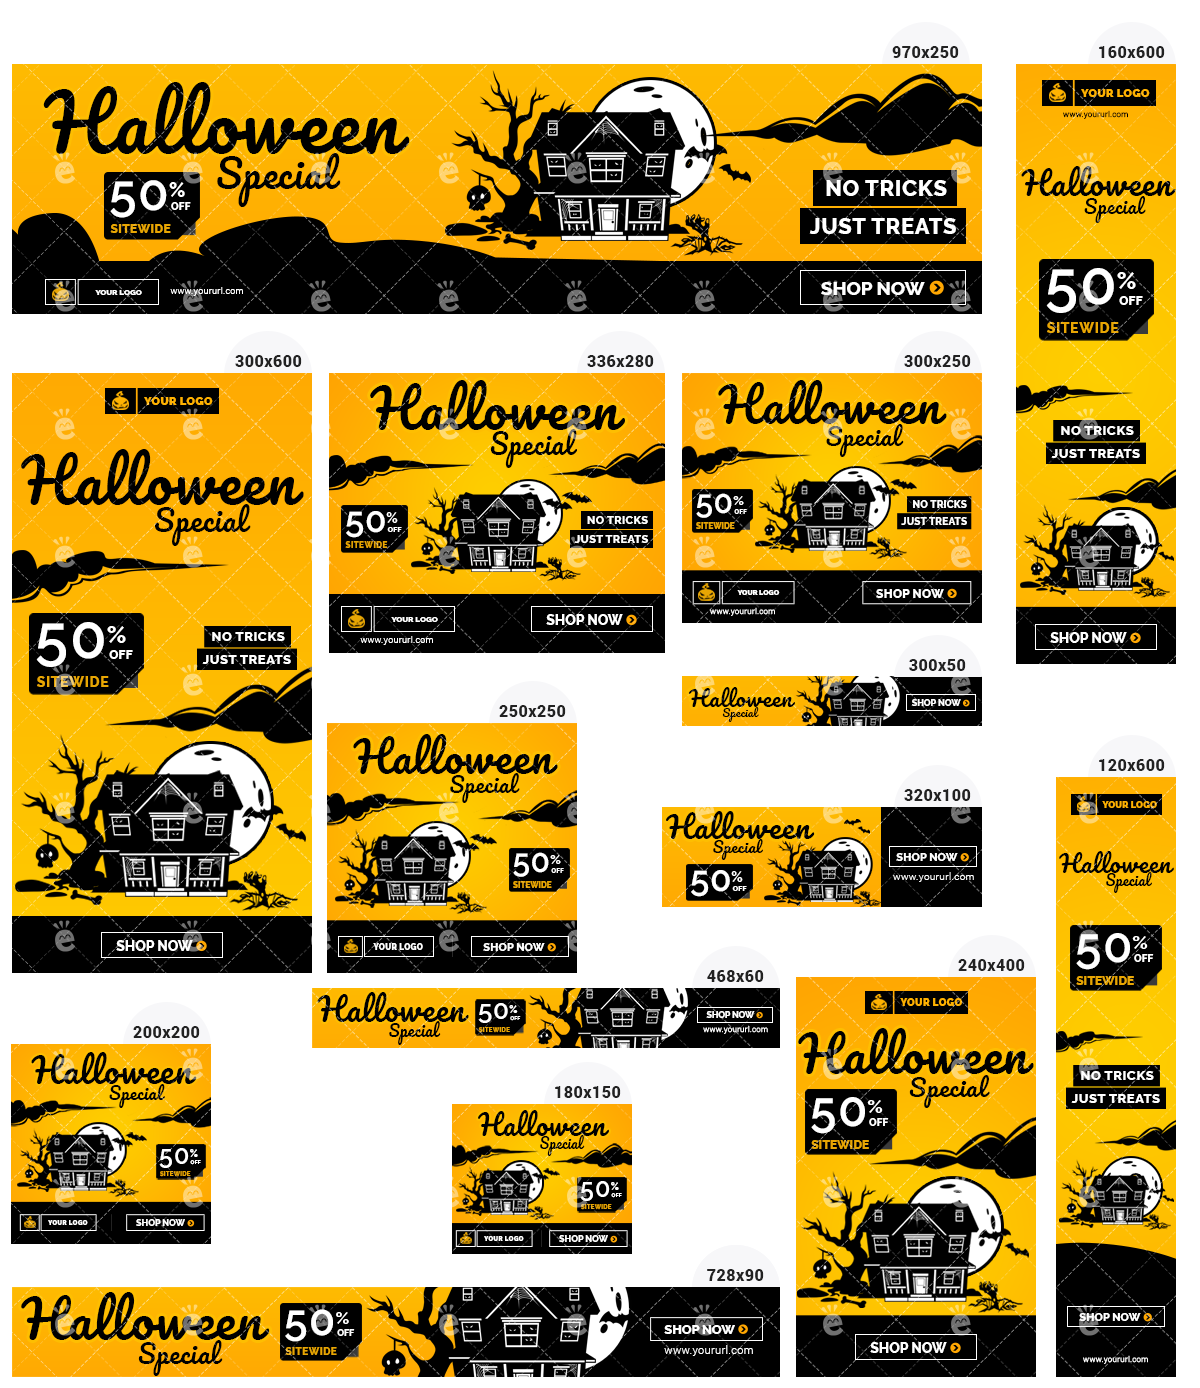 Halloween Banner Set 1 - Haunted House